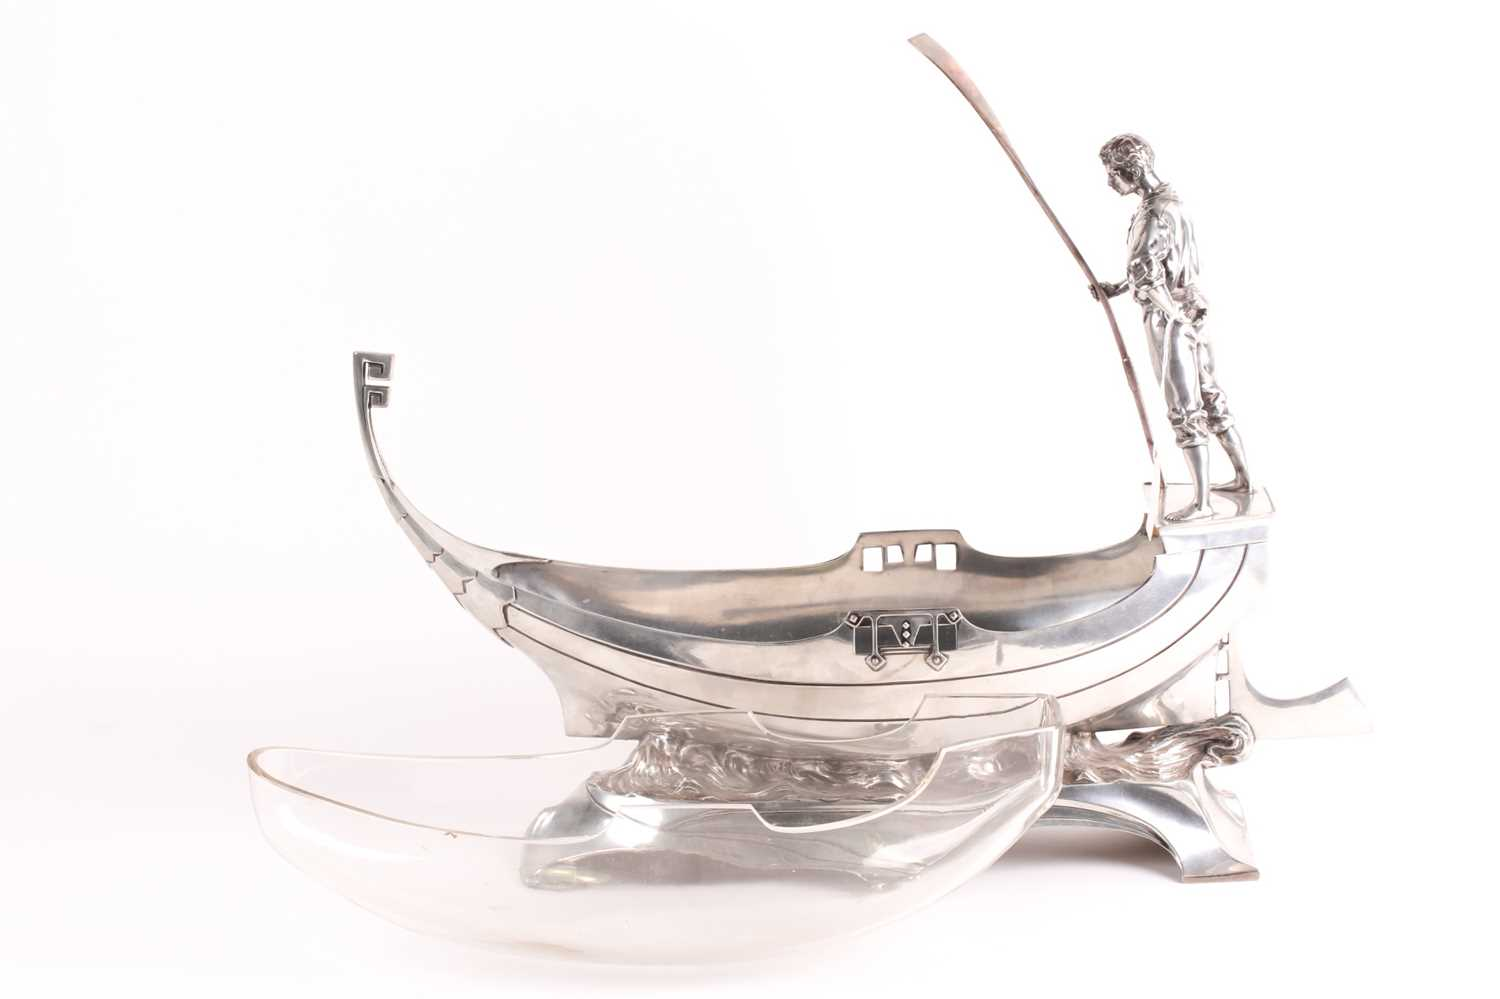 An Art Nouveau WMF centrepiece. In the form of a gondola with a gondolier to the rear holdng a pole; - Image 2 of 8